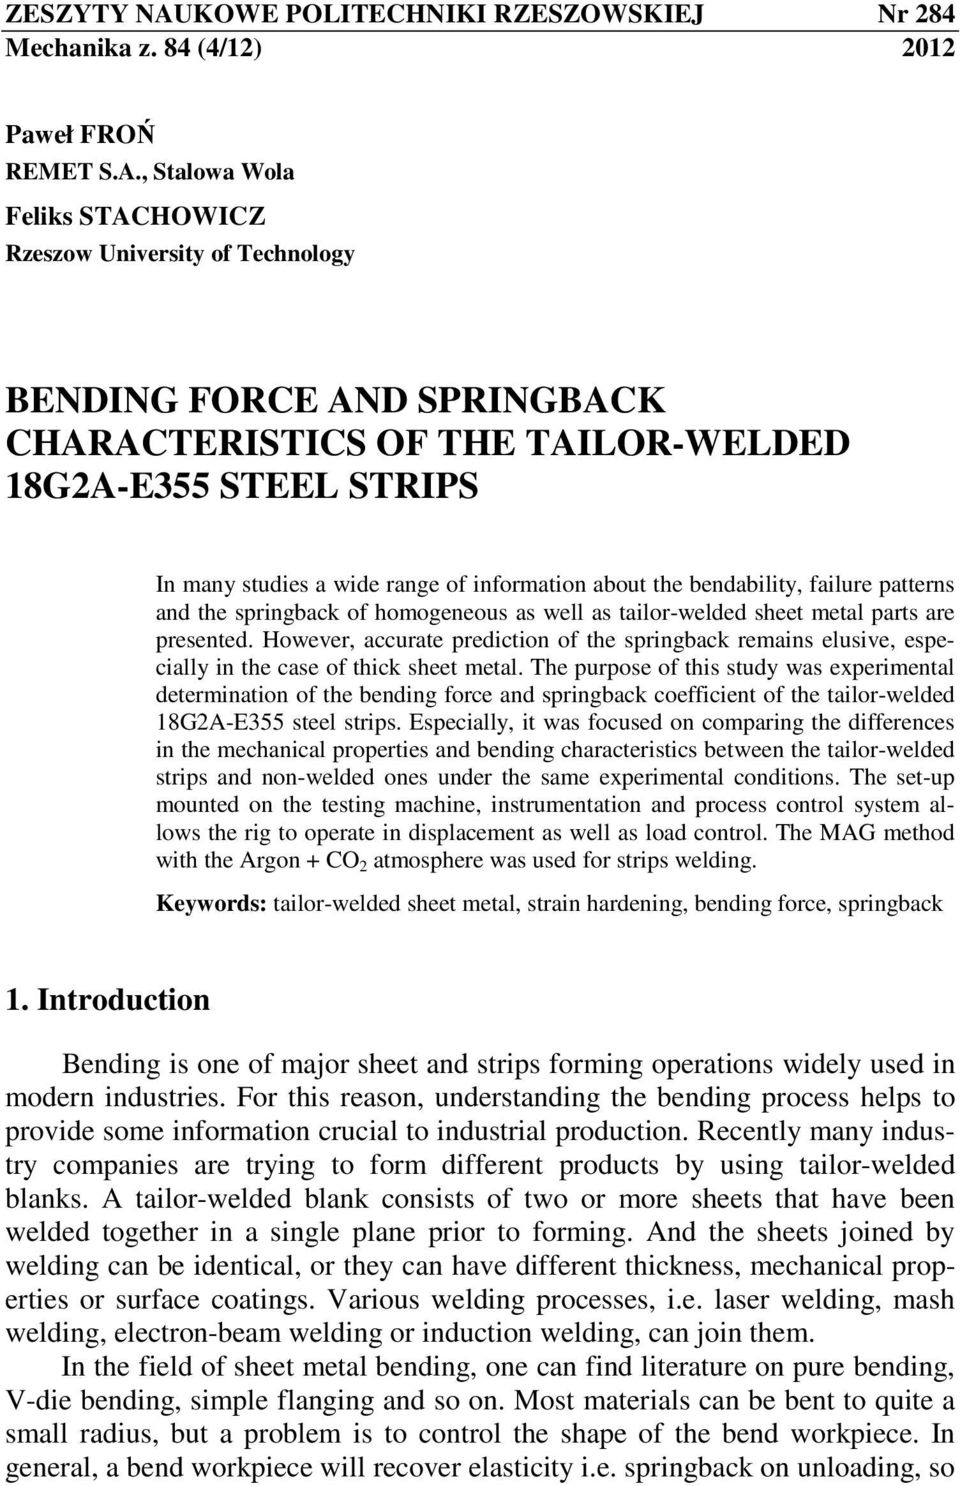 , Stalowa Wola Feliks STACHOWICZ Rzeszow University of Technology BENDING FORCE AND SPRINGBACK CHARACTERISTICS OF THE TAILOR-WELDED 18G2A-E355 STEEL STRIPS In many studies a wide range of information